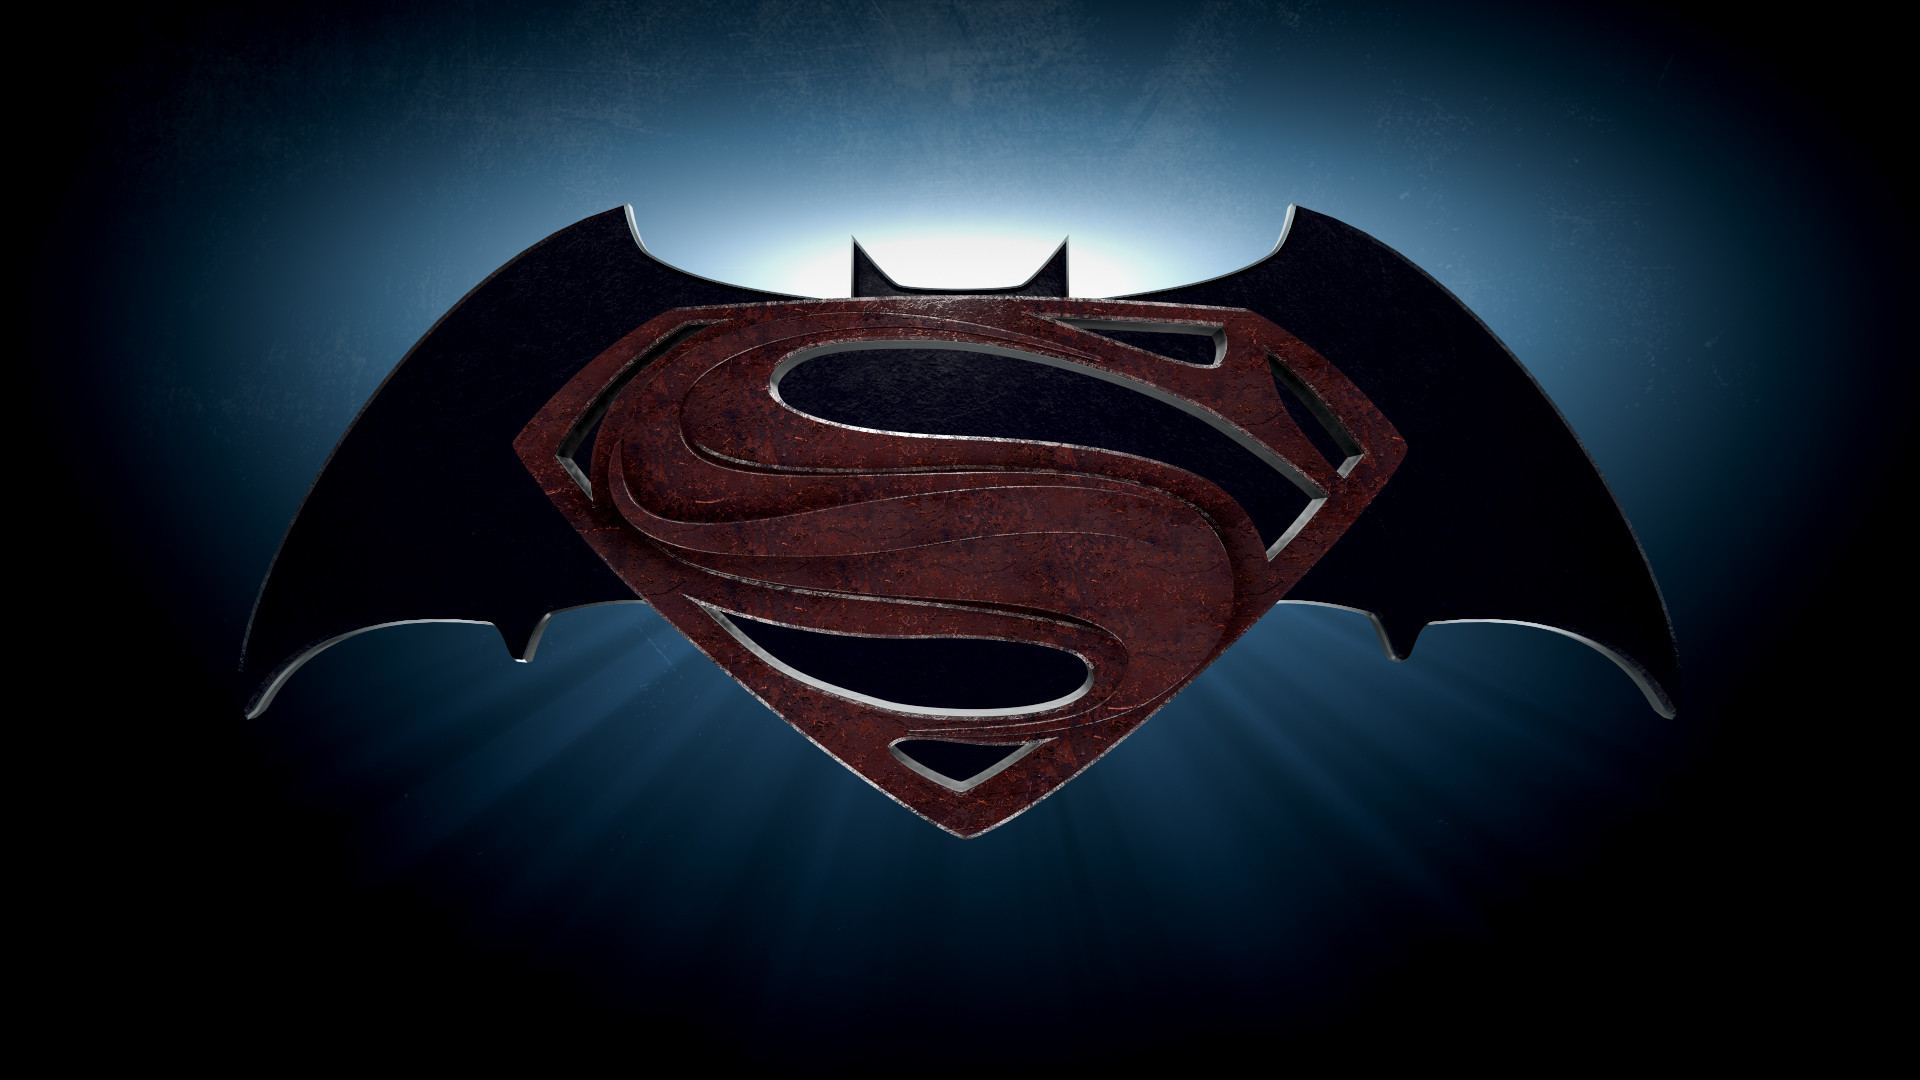 Batman v Superman 2015 Movie Logo HD Wallpaper   Stylish HD Wallpapers 1920x1080